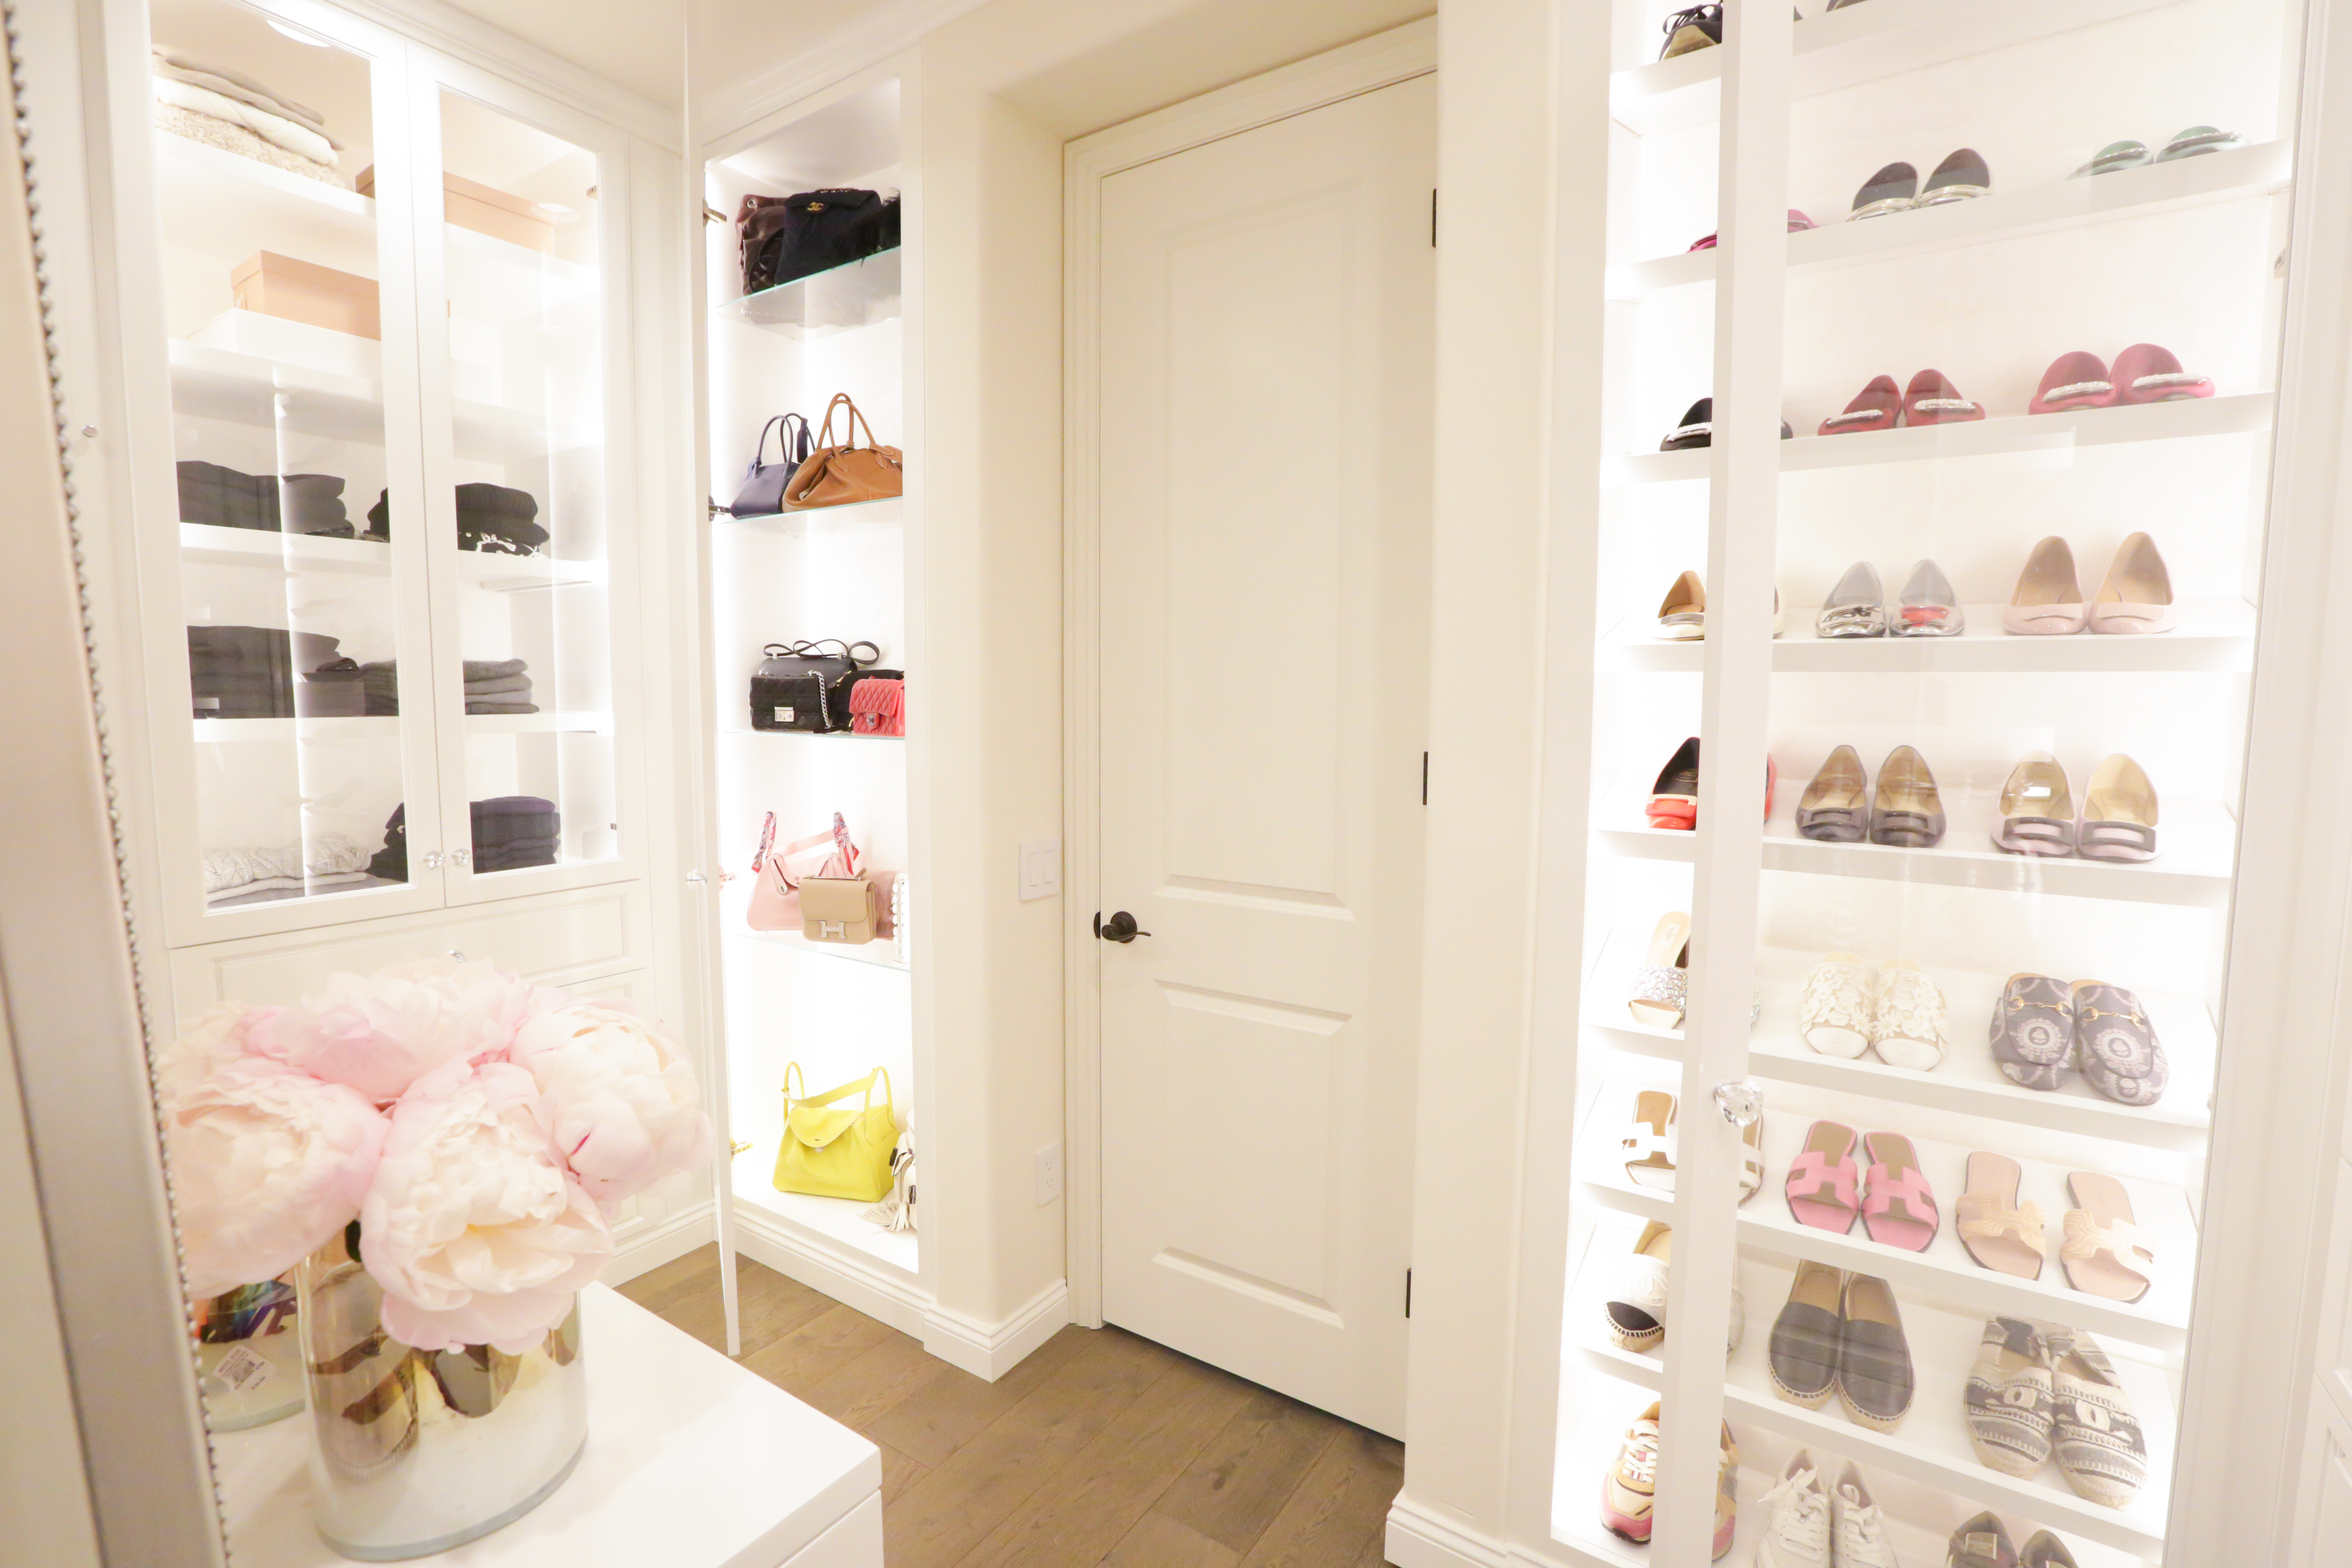 Luxury Closets Sweeping Design Trends Of 2018 Luxury Homes Luxury Real Estate Uniquehomes Com